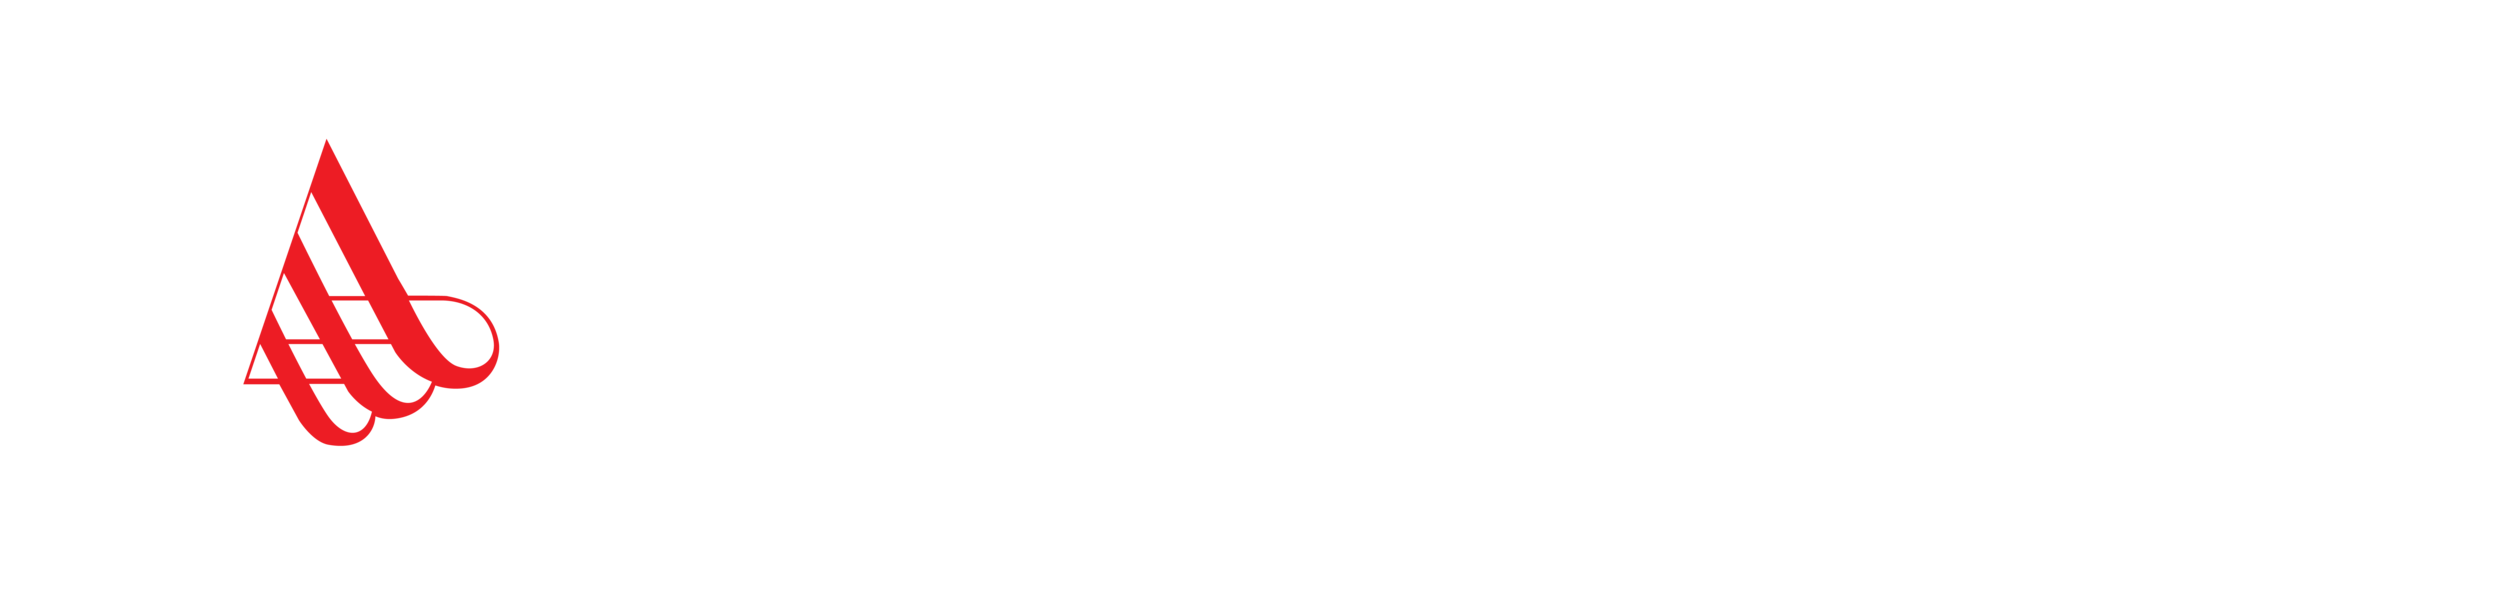 njca_logo_statement_full_color_white.png